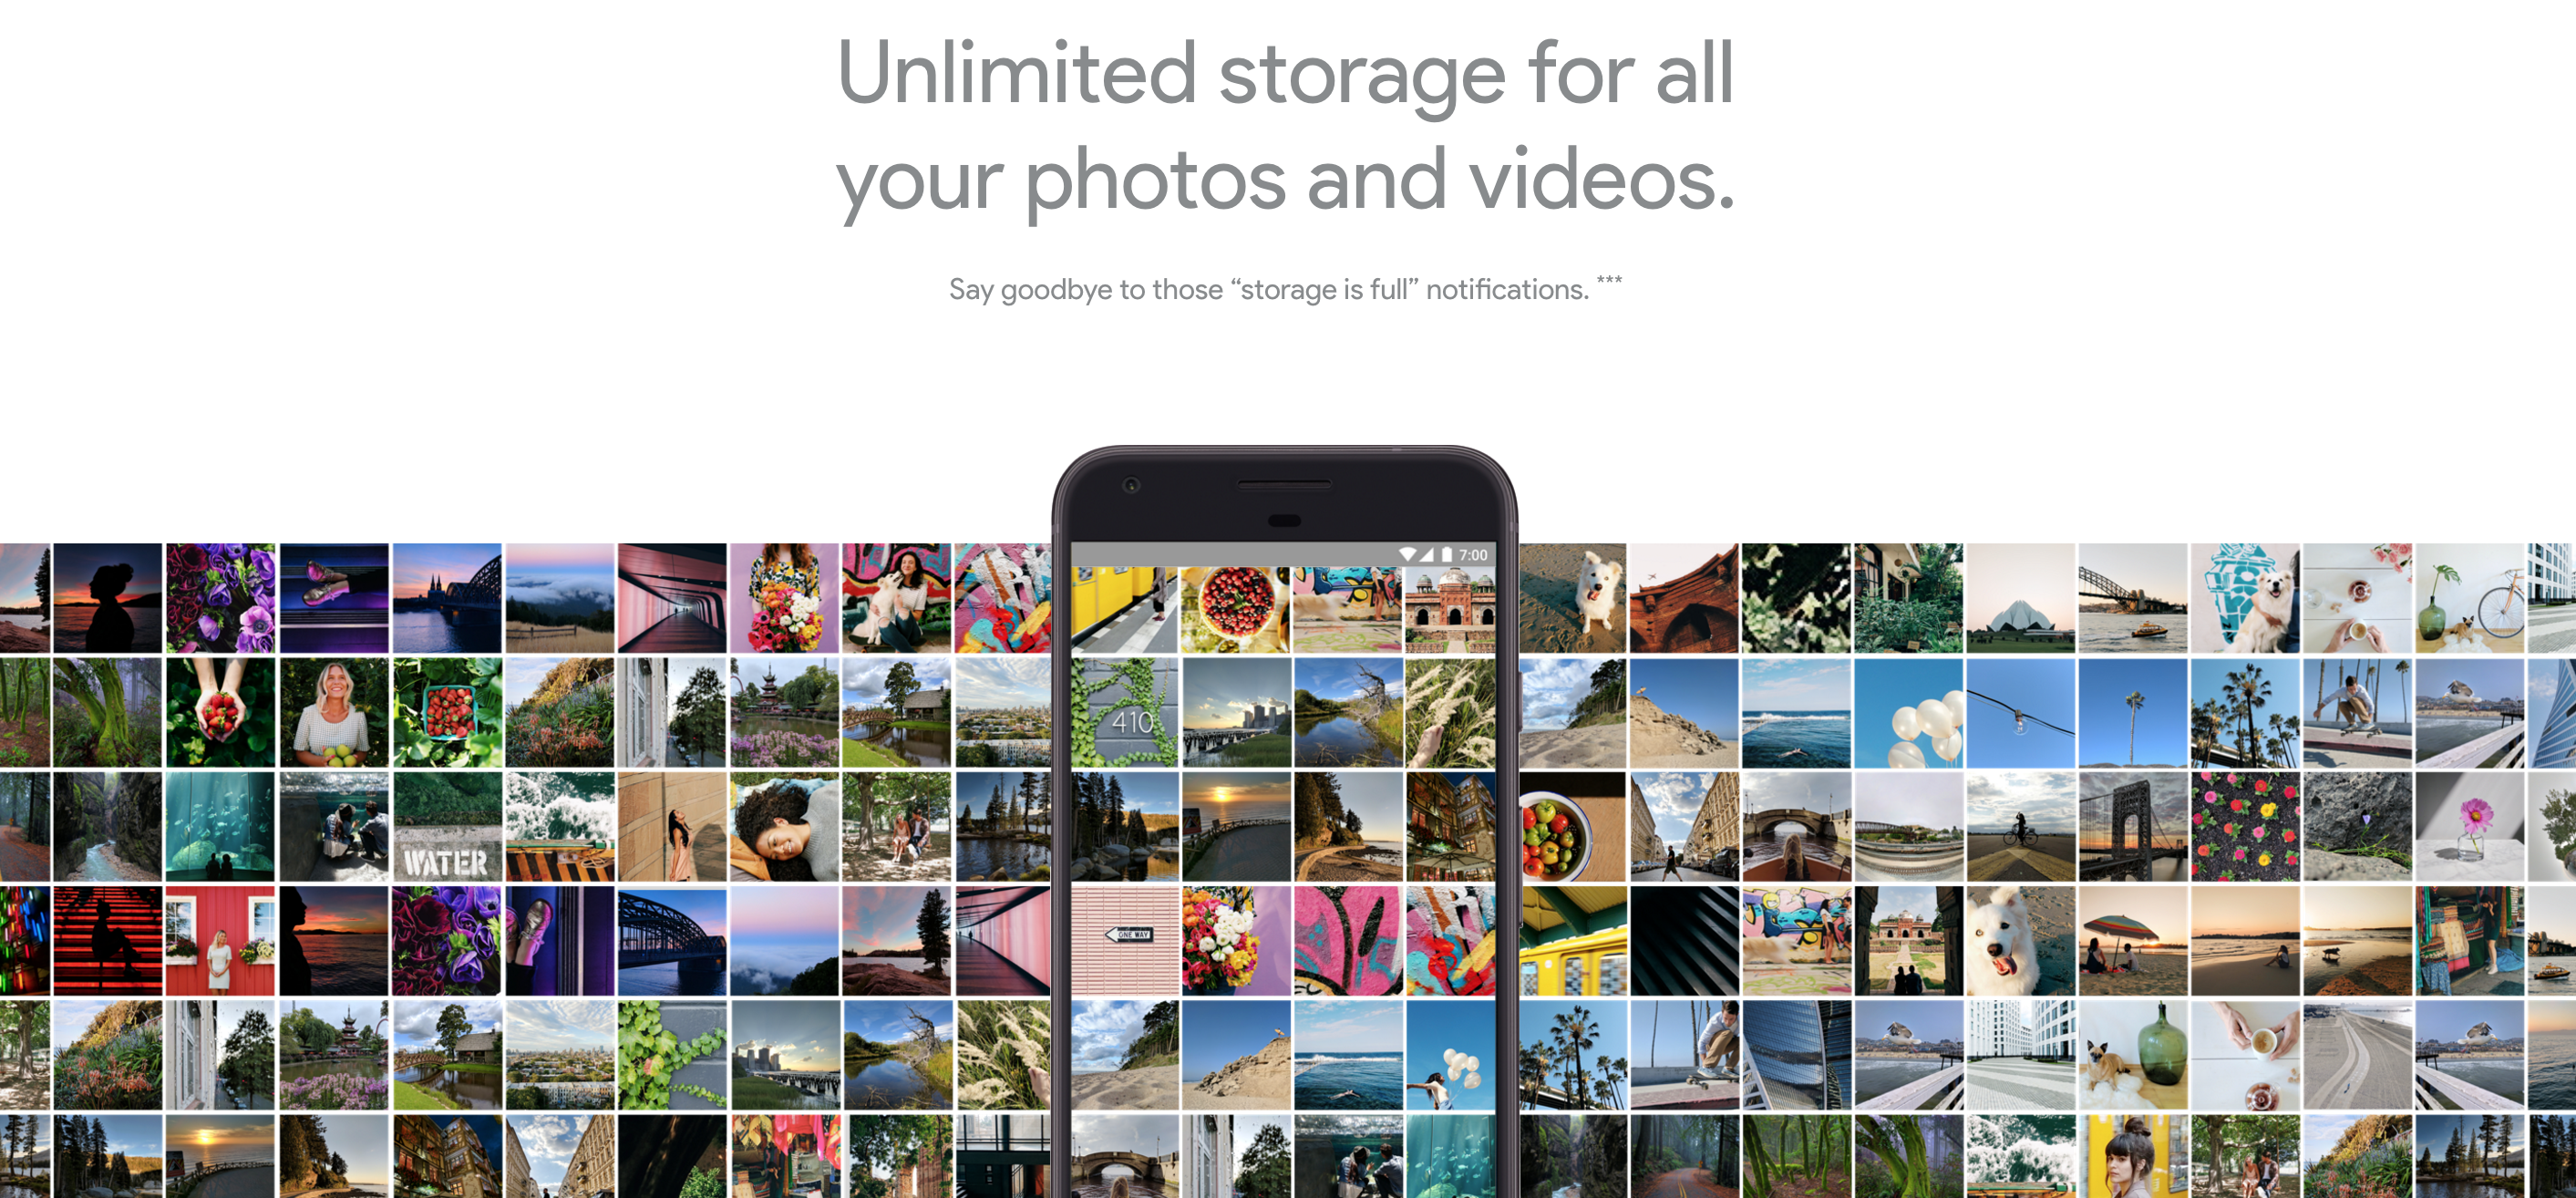 google photos unlimited storage for free